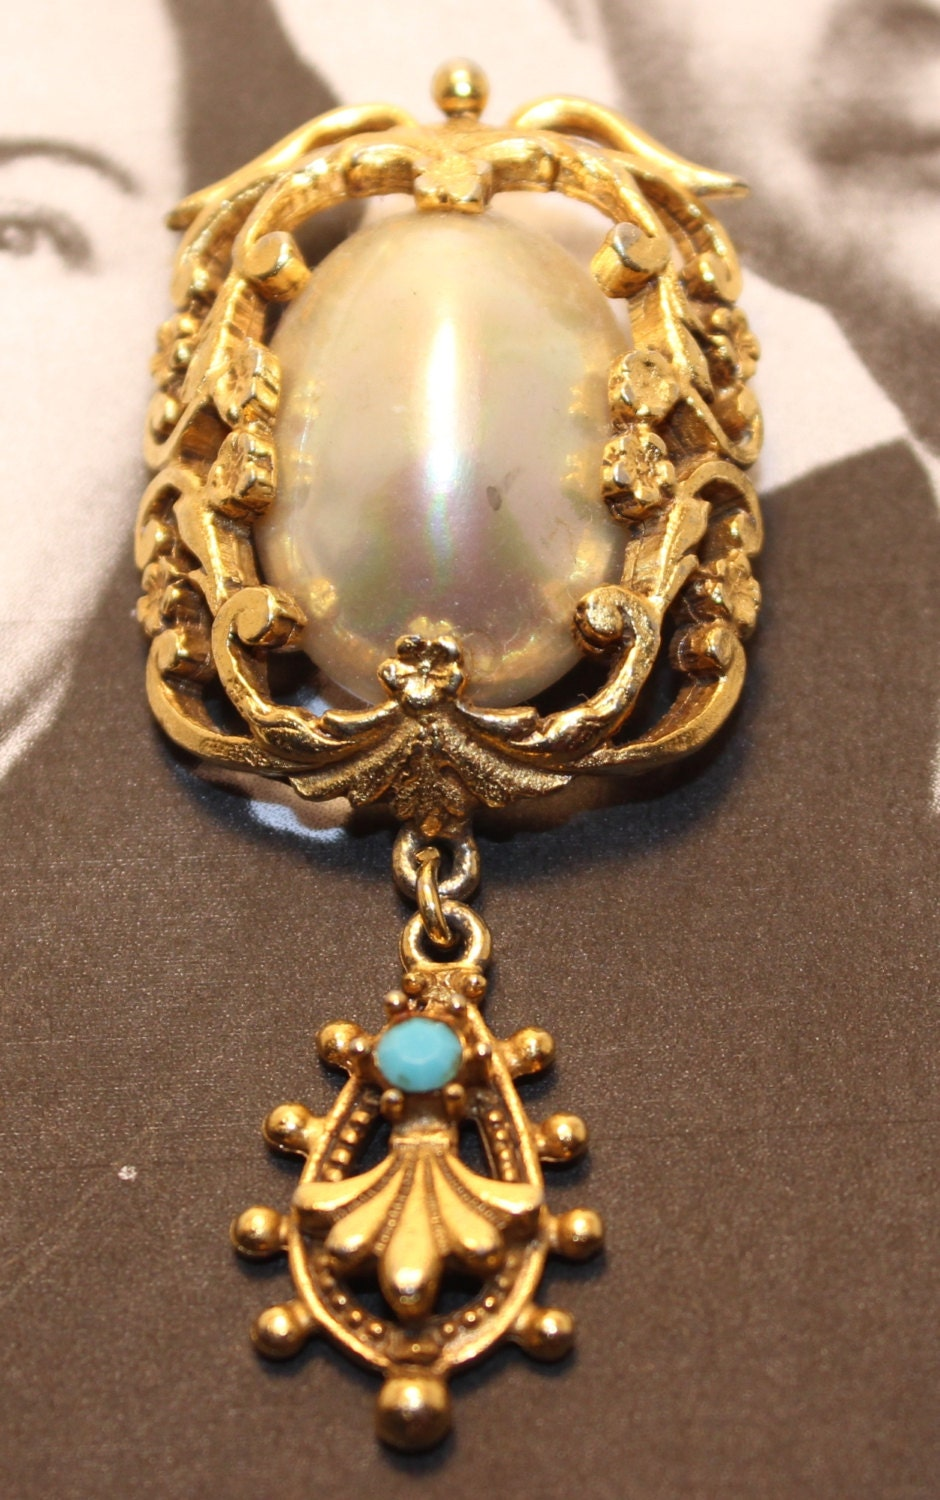 This #vintage Florenza cameo brooch is incredible! It